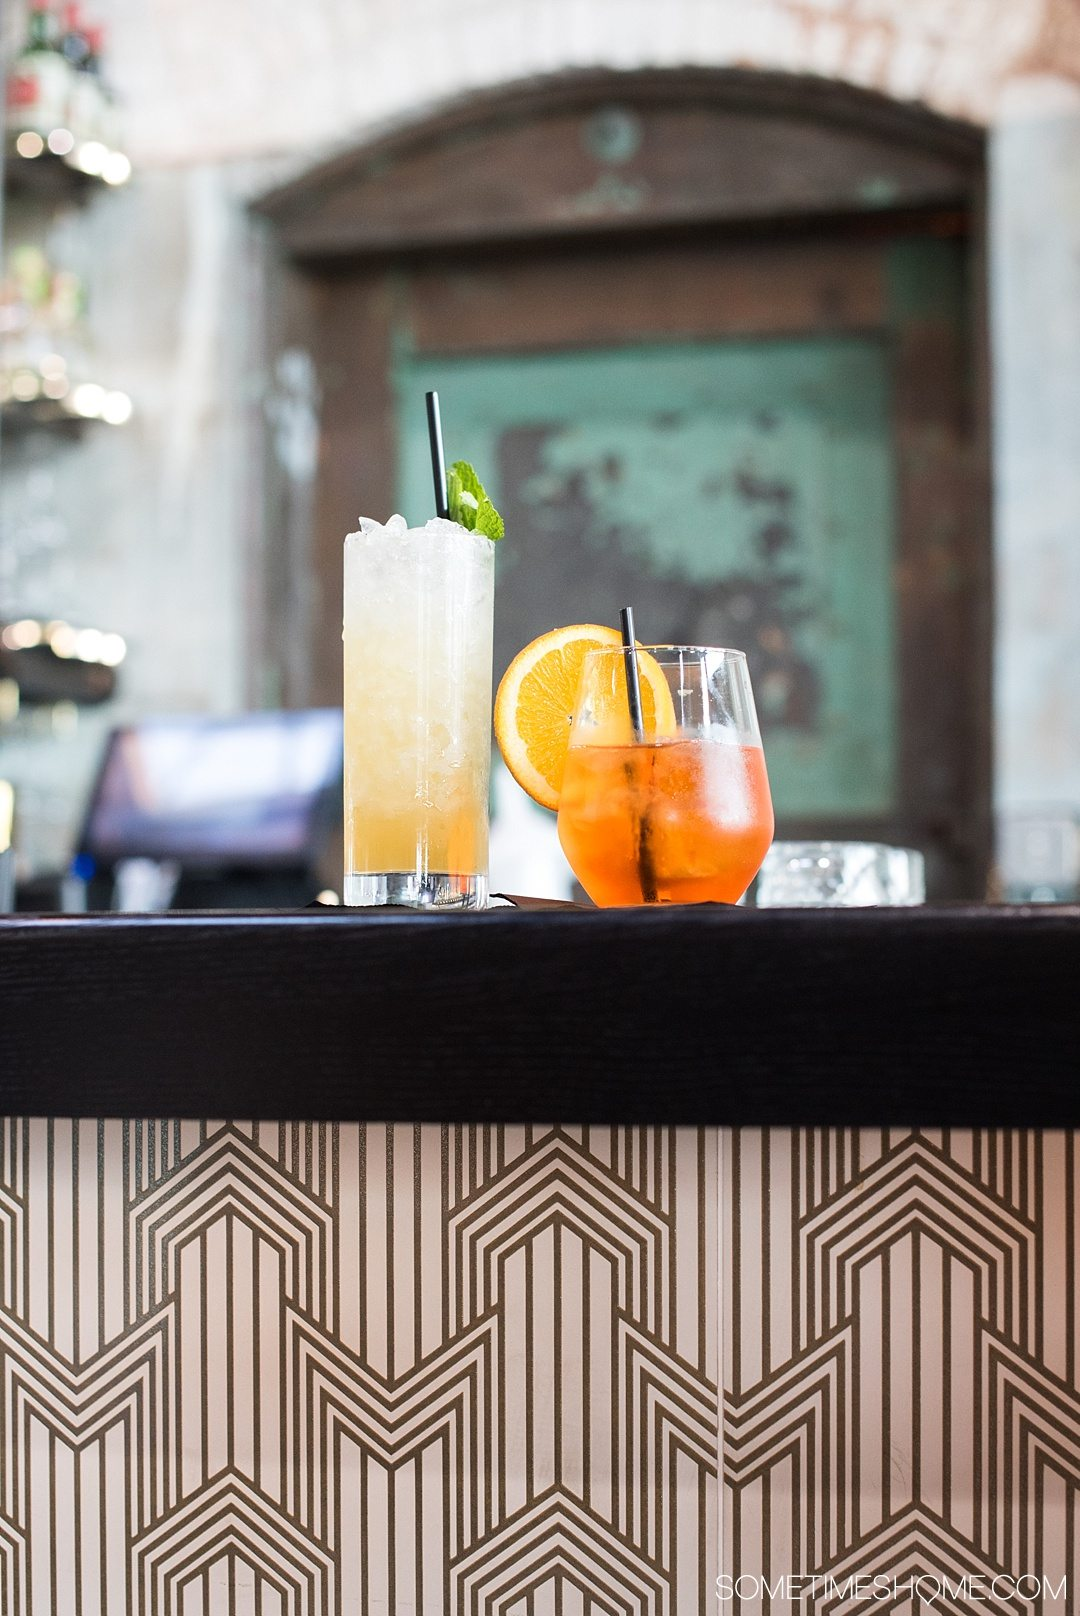 Traveling to Tampa Bay, Florida? Be sure to check out Armature Works Public Market restaurants and bars, including Cuban sandwiches and Japanese ramen, and everything in between. Fine & Dandy's cocktails are a must! Read about what these libations are in length and plan your visit with kids and adults by clicking through! #TampaBay #Florida #FoodHall